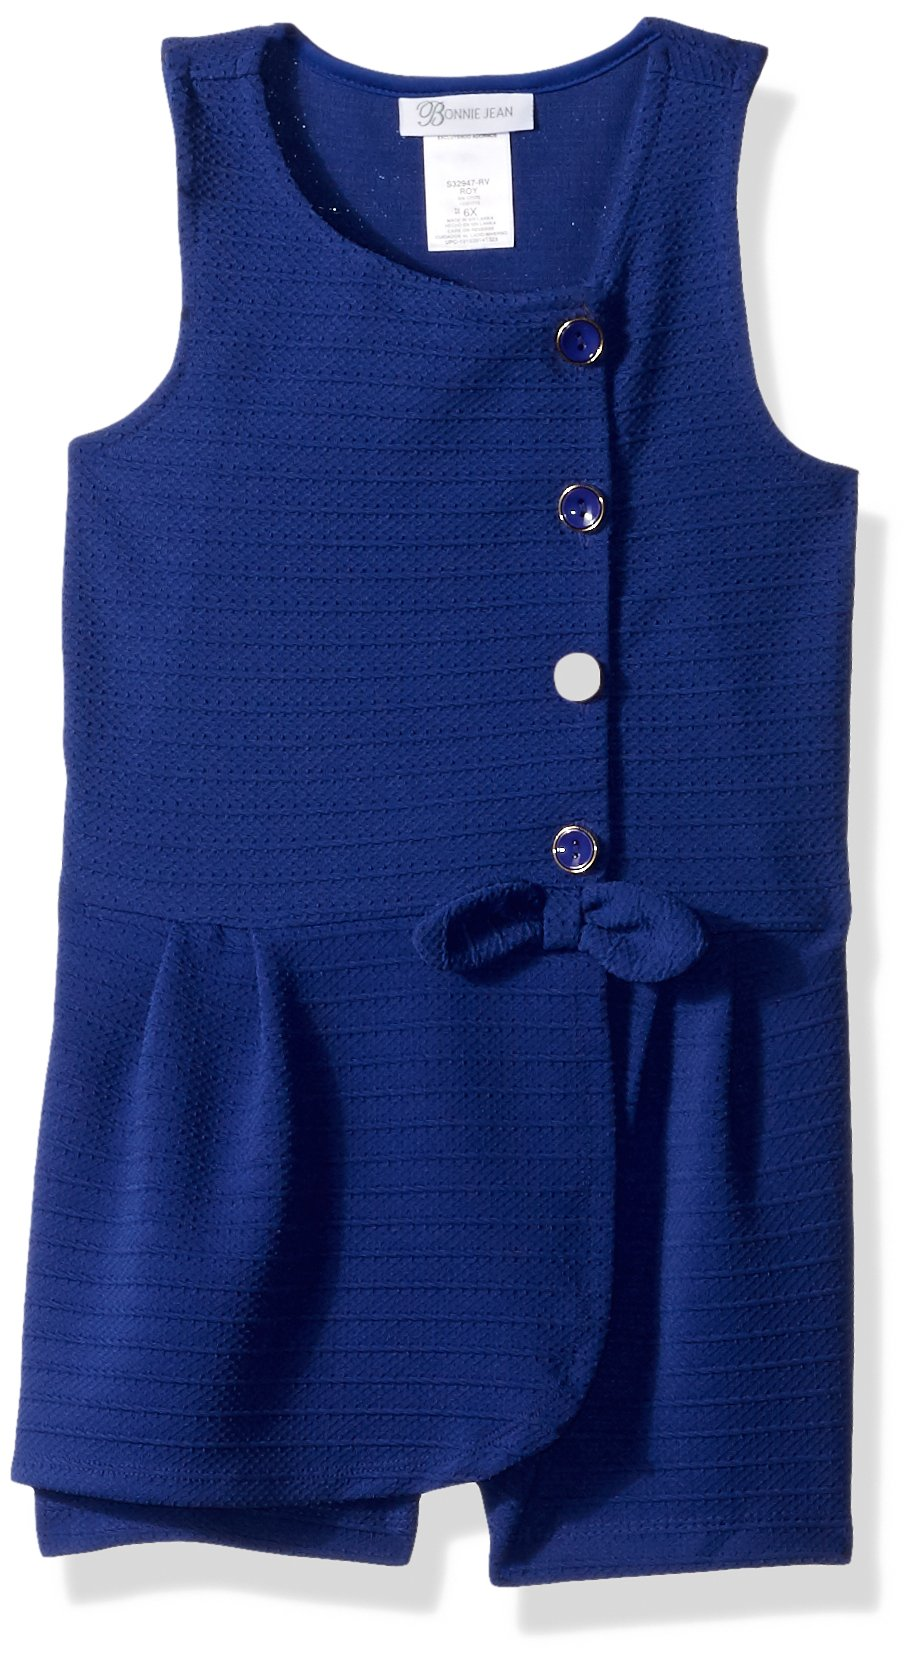 Bonnie Jean Little Girls' Romper, Royal Blue, 6